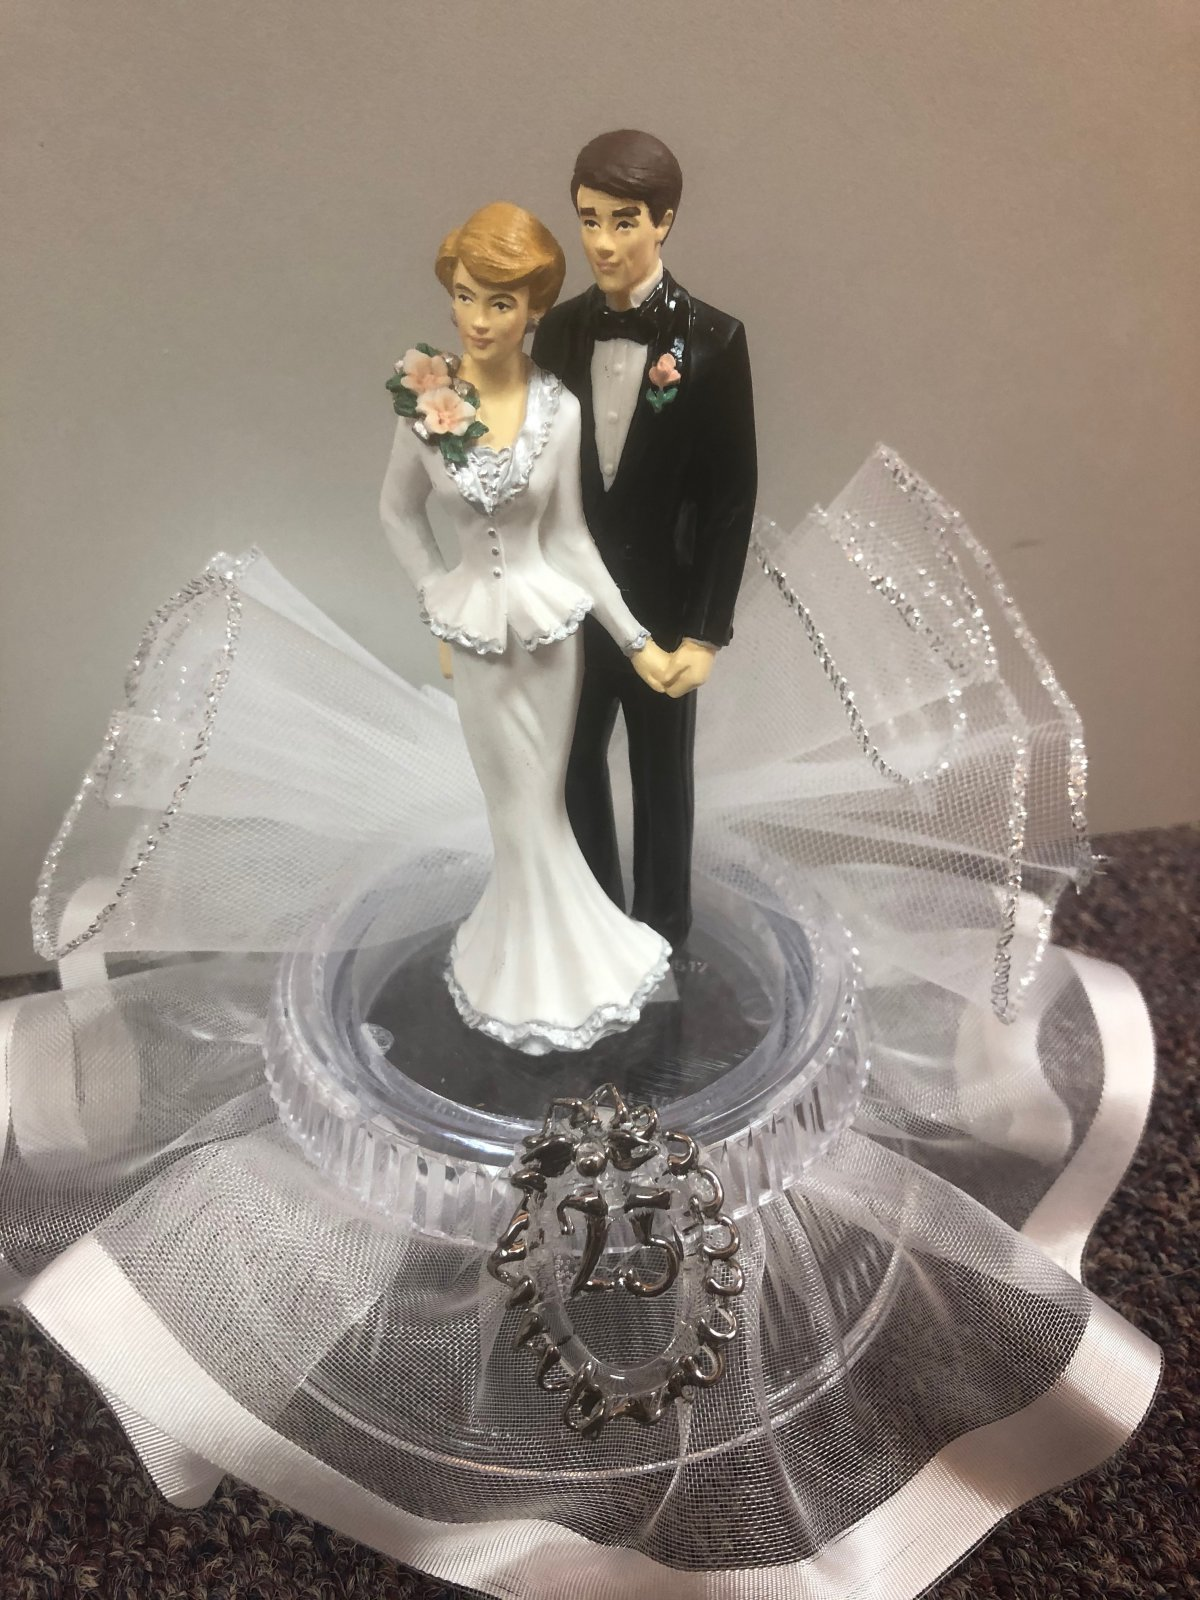 25th Anniversary  Couple Cake Topper  White Dress & Black Tux